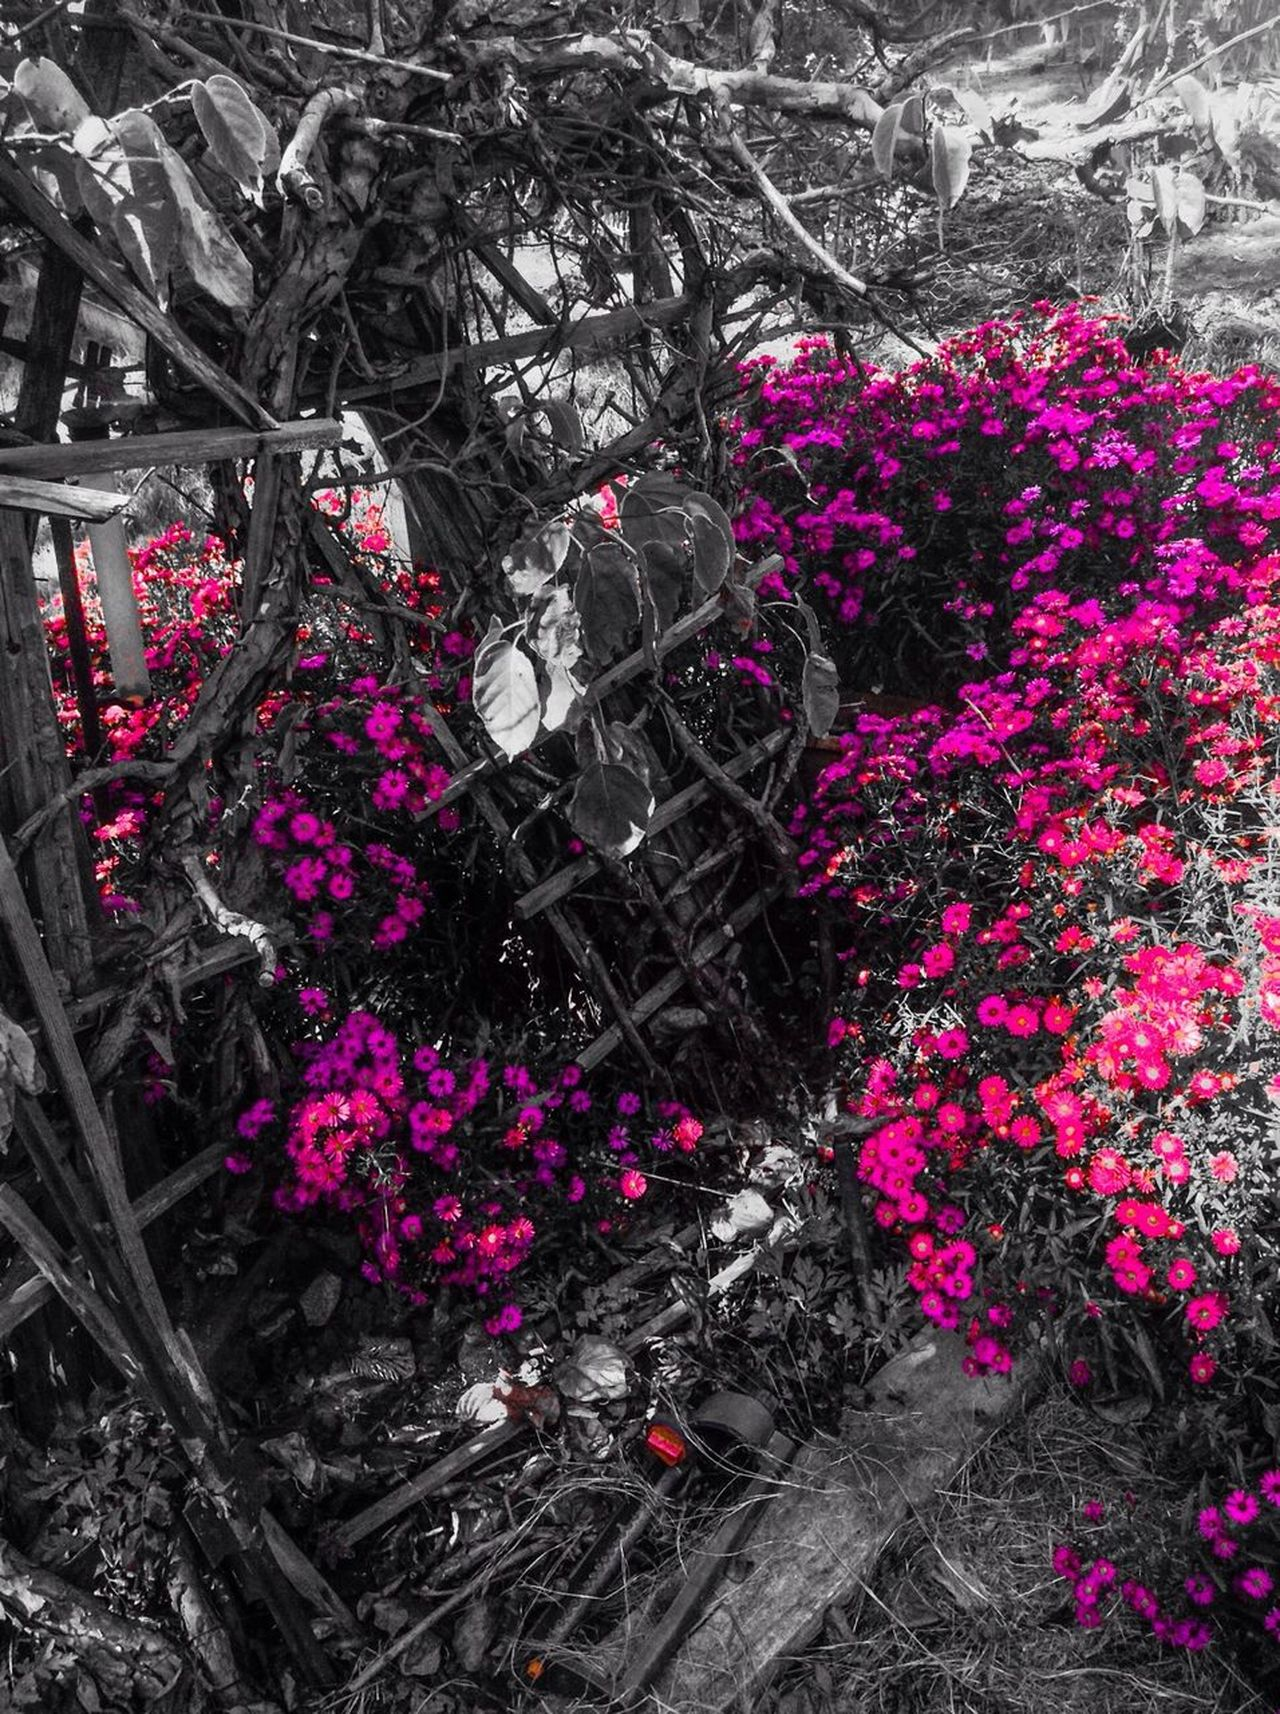 Colorsplash Flowers Dead Alive.